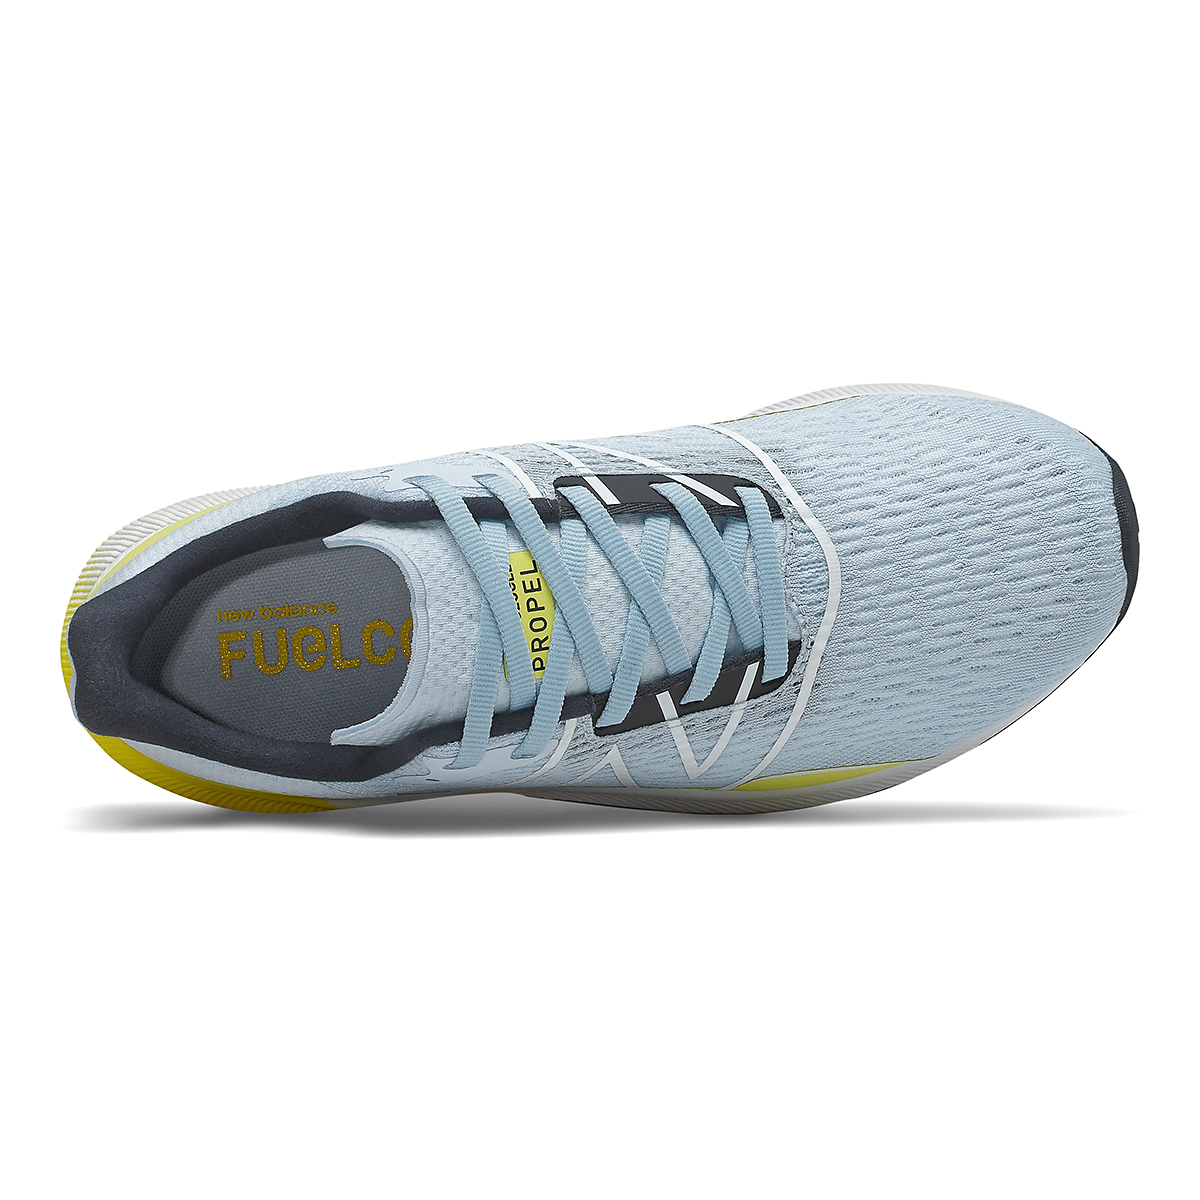 Women's New Balance Fuelcell Propel V2 Running Shoe - Color: Uv Glo/First Light/Eclipse - Size: 5 - Width: Regular, Uv Glo/First Light/Eclipse, large, image 3